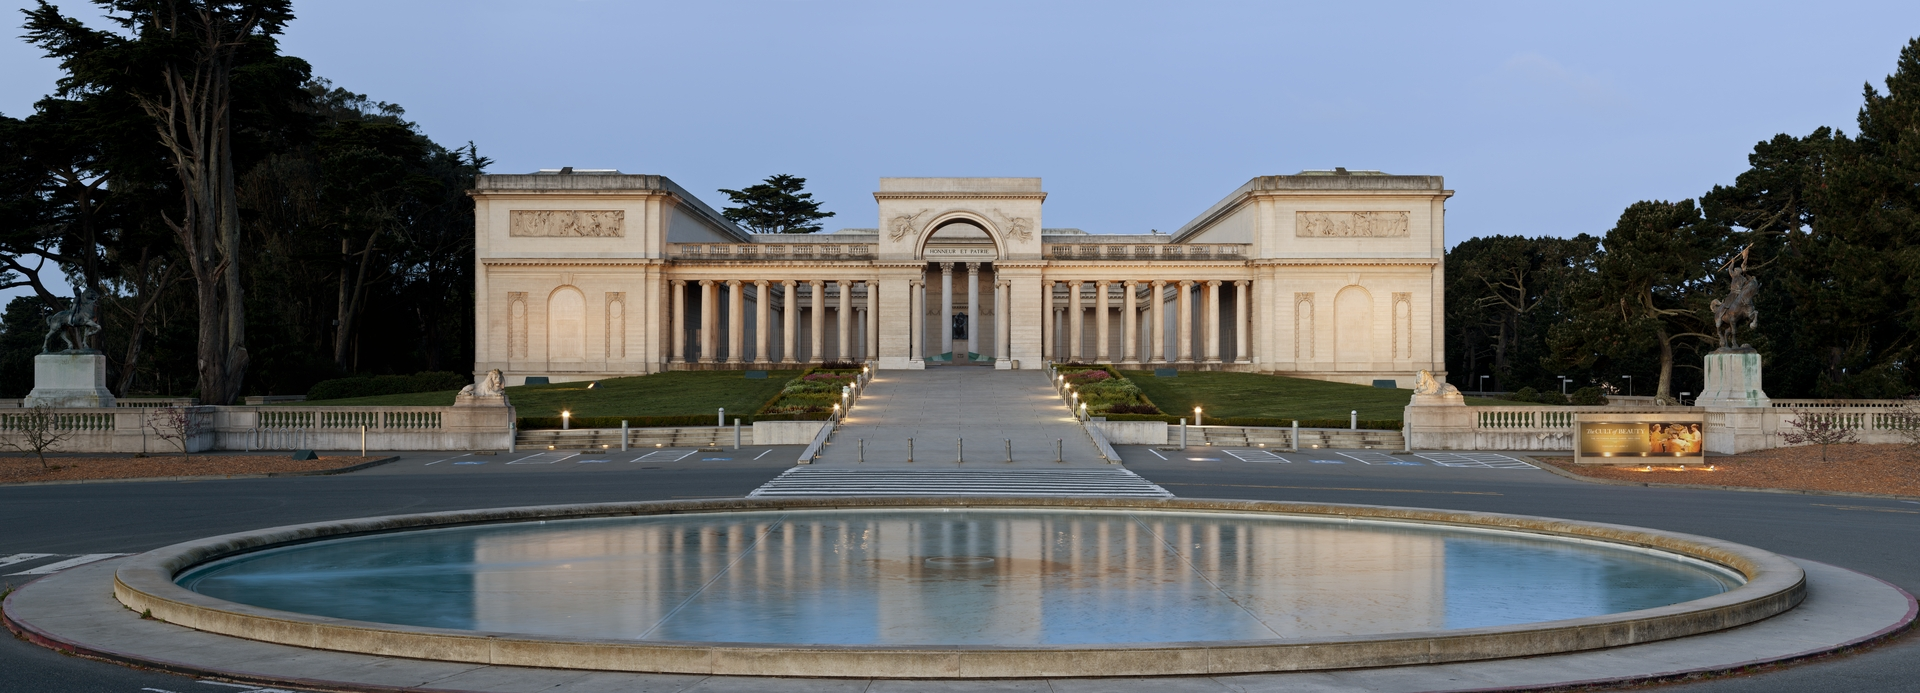 Legion of Honor_Pano3